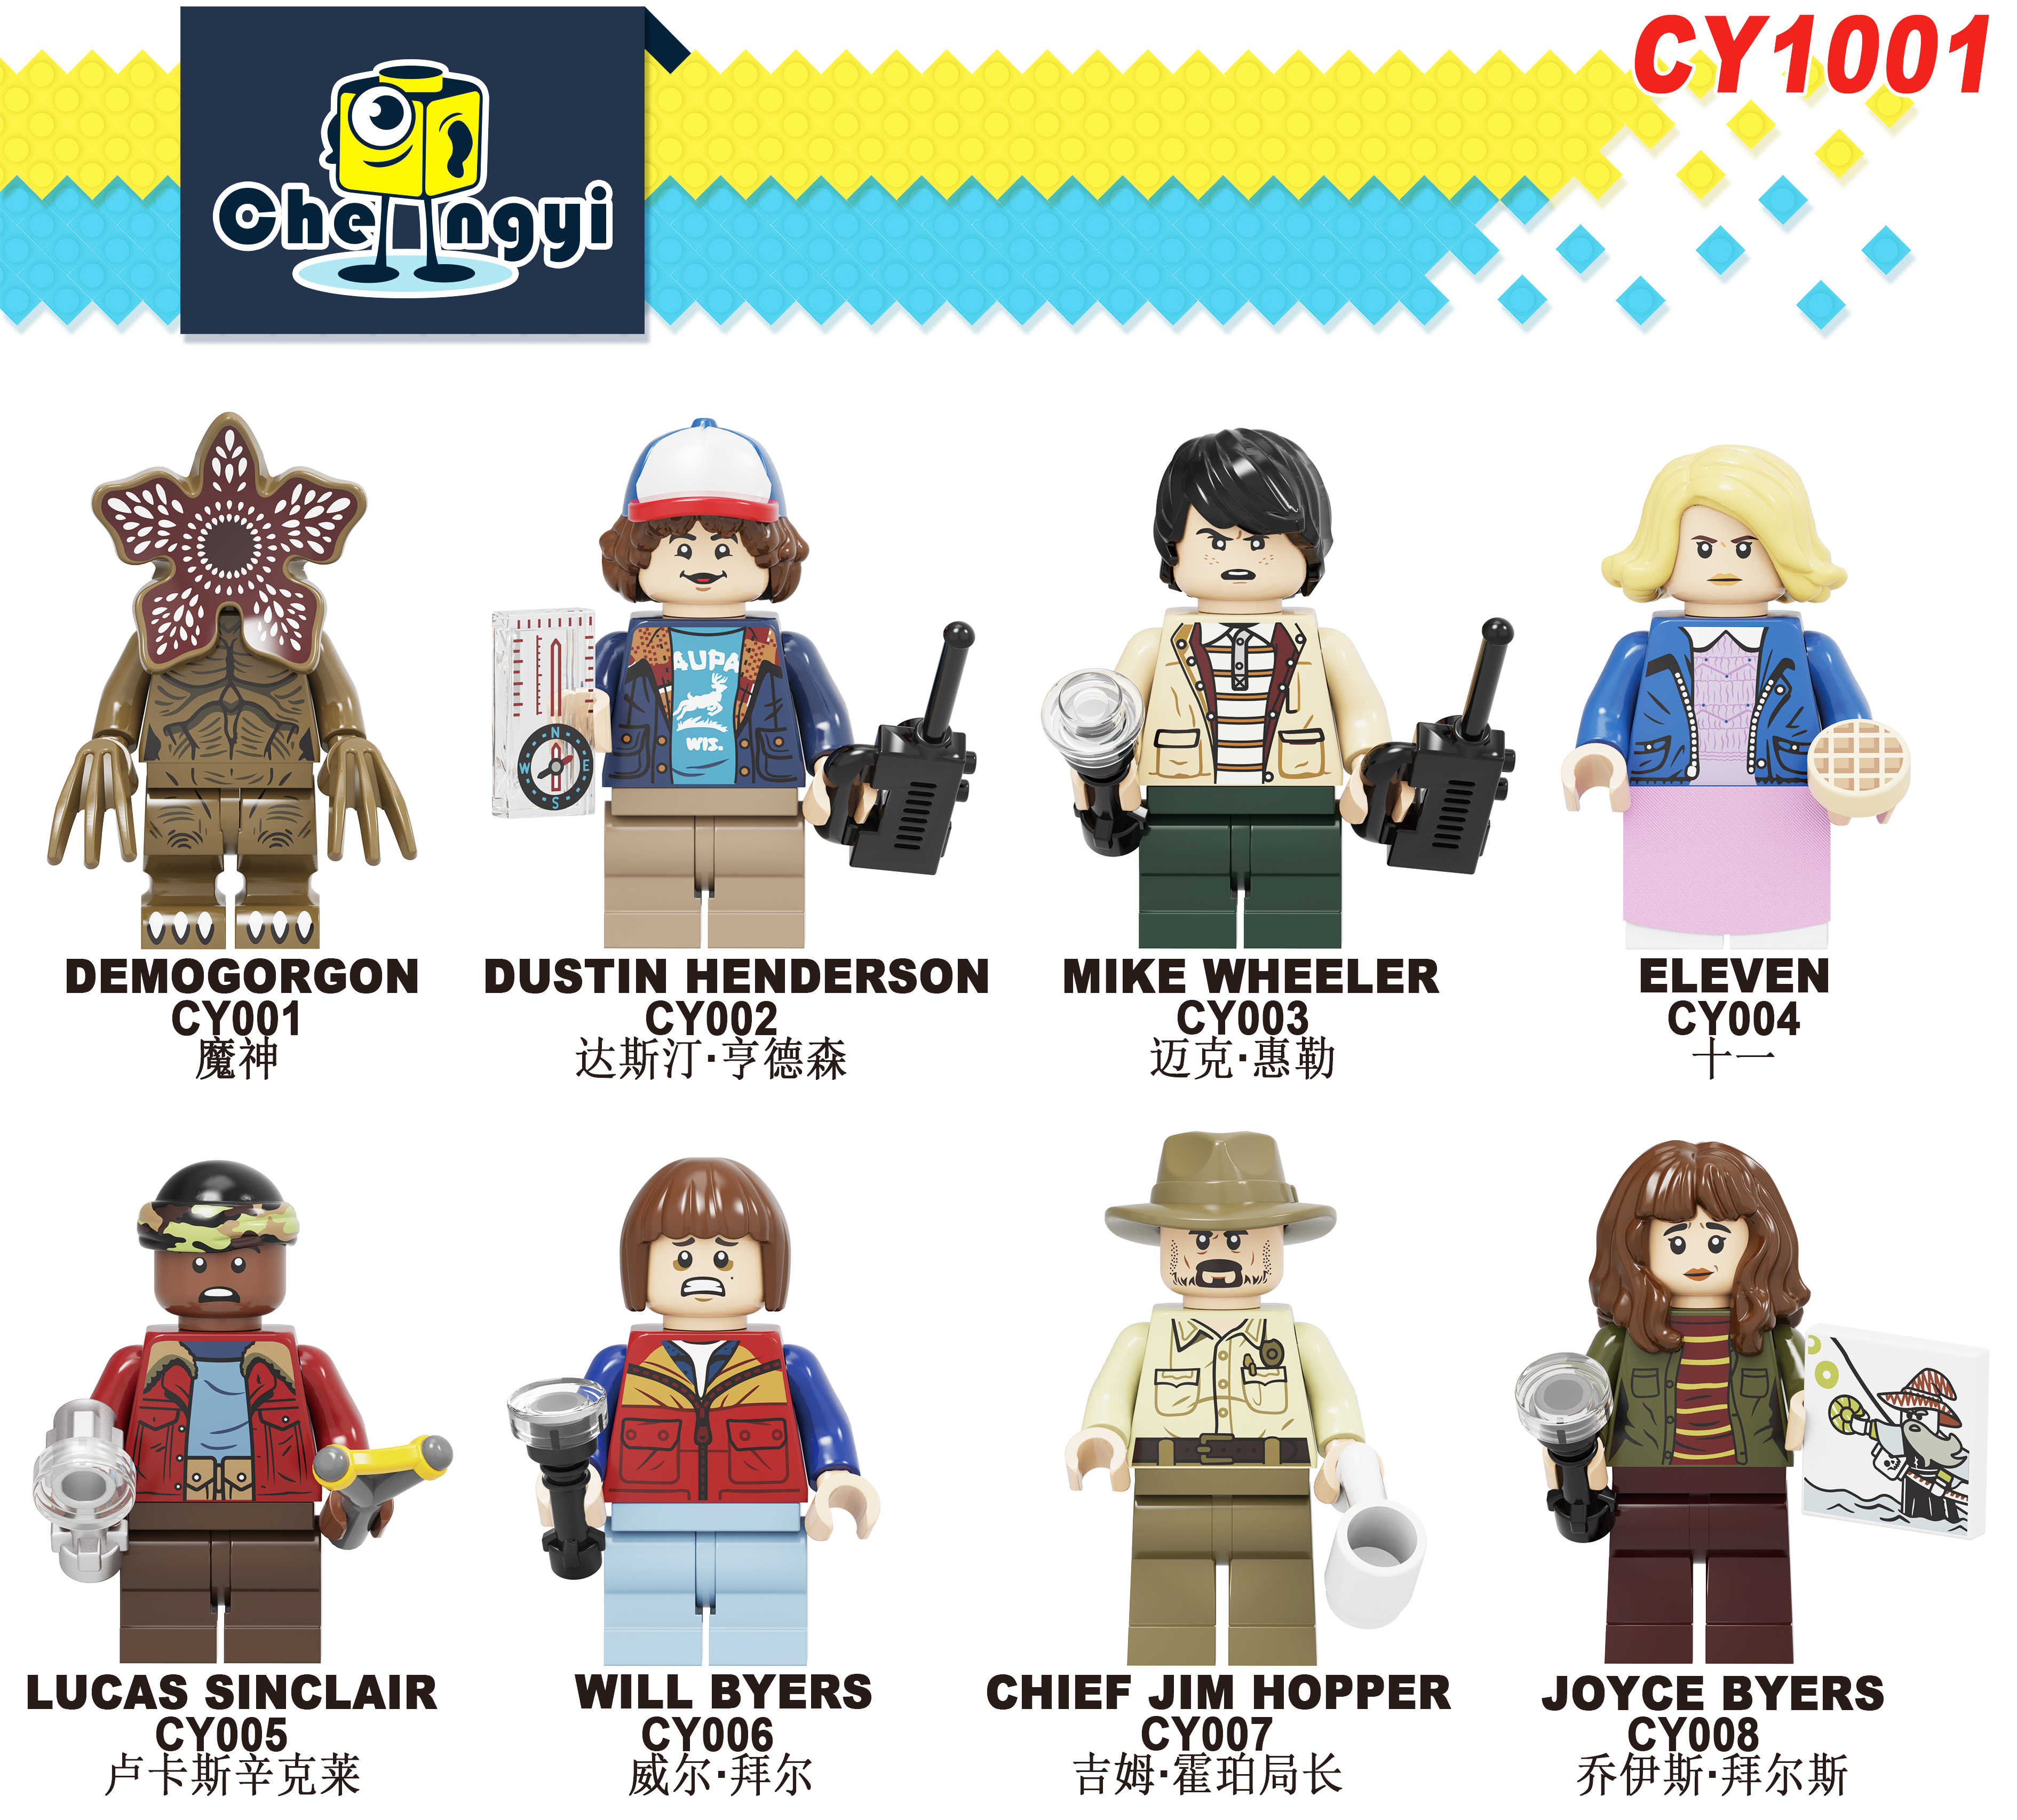 CY1001 Building Blocks Demogorgon Dustin Henderson Mike Wheeler Eleven Lucas Sinclair Will Byers Figures Bricks Toys for Kids